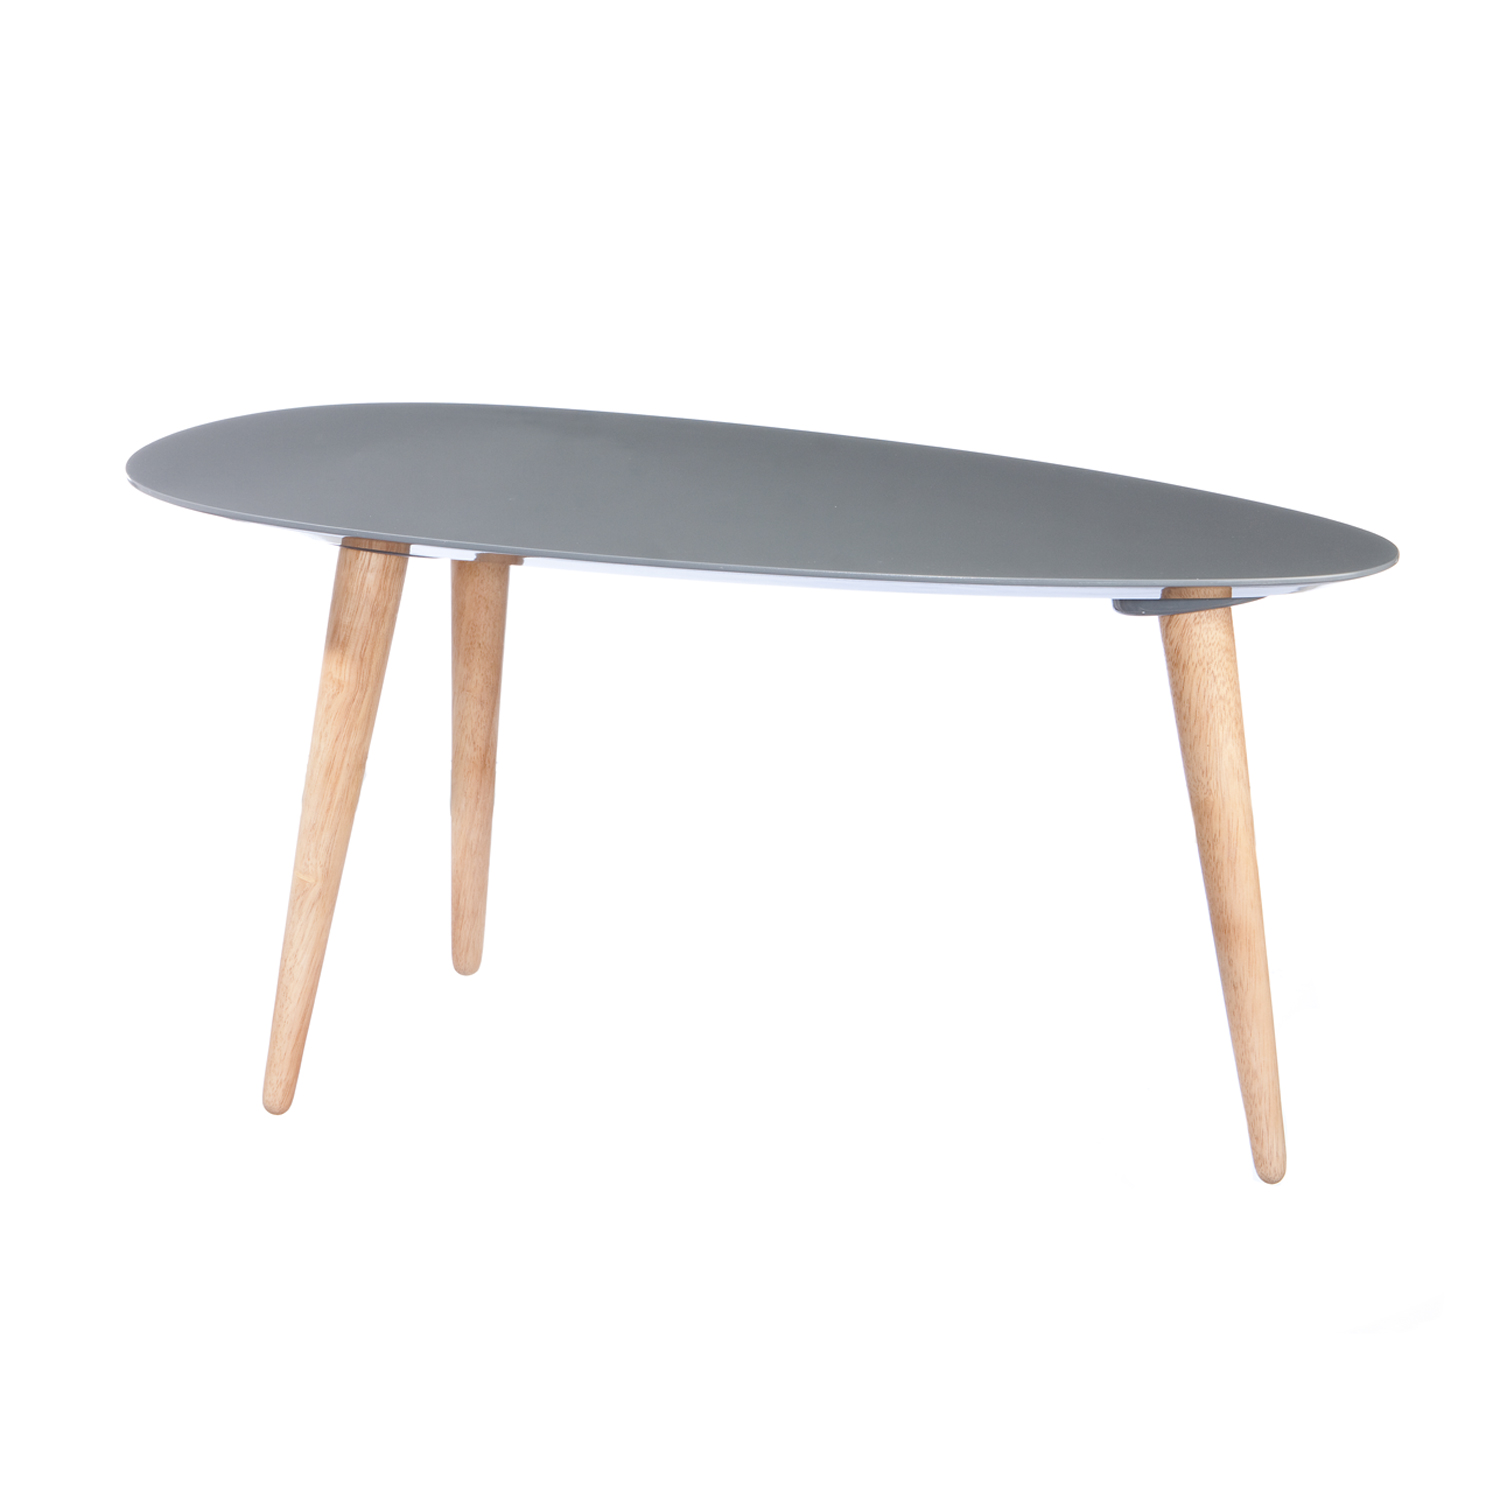 Egg Shaped Table large egg table (grey) - mili design nyc - touch of modern